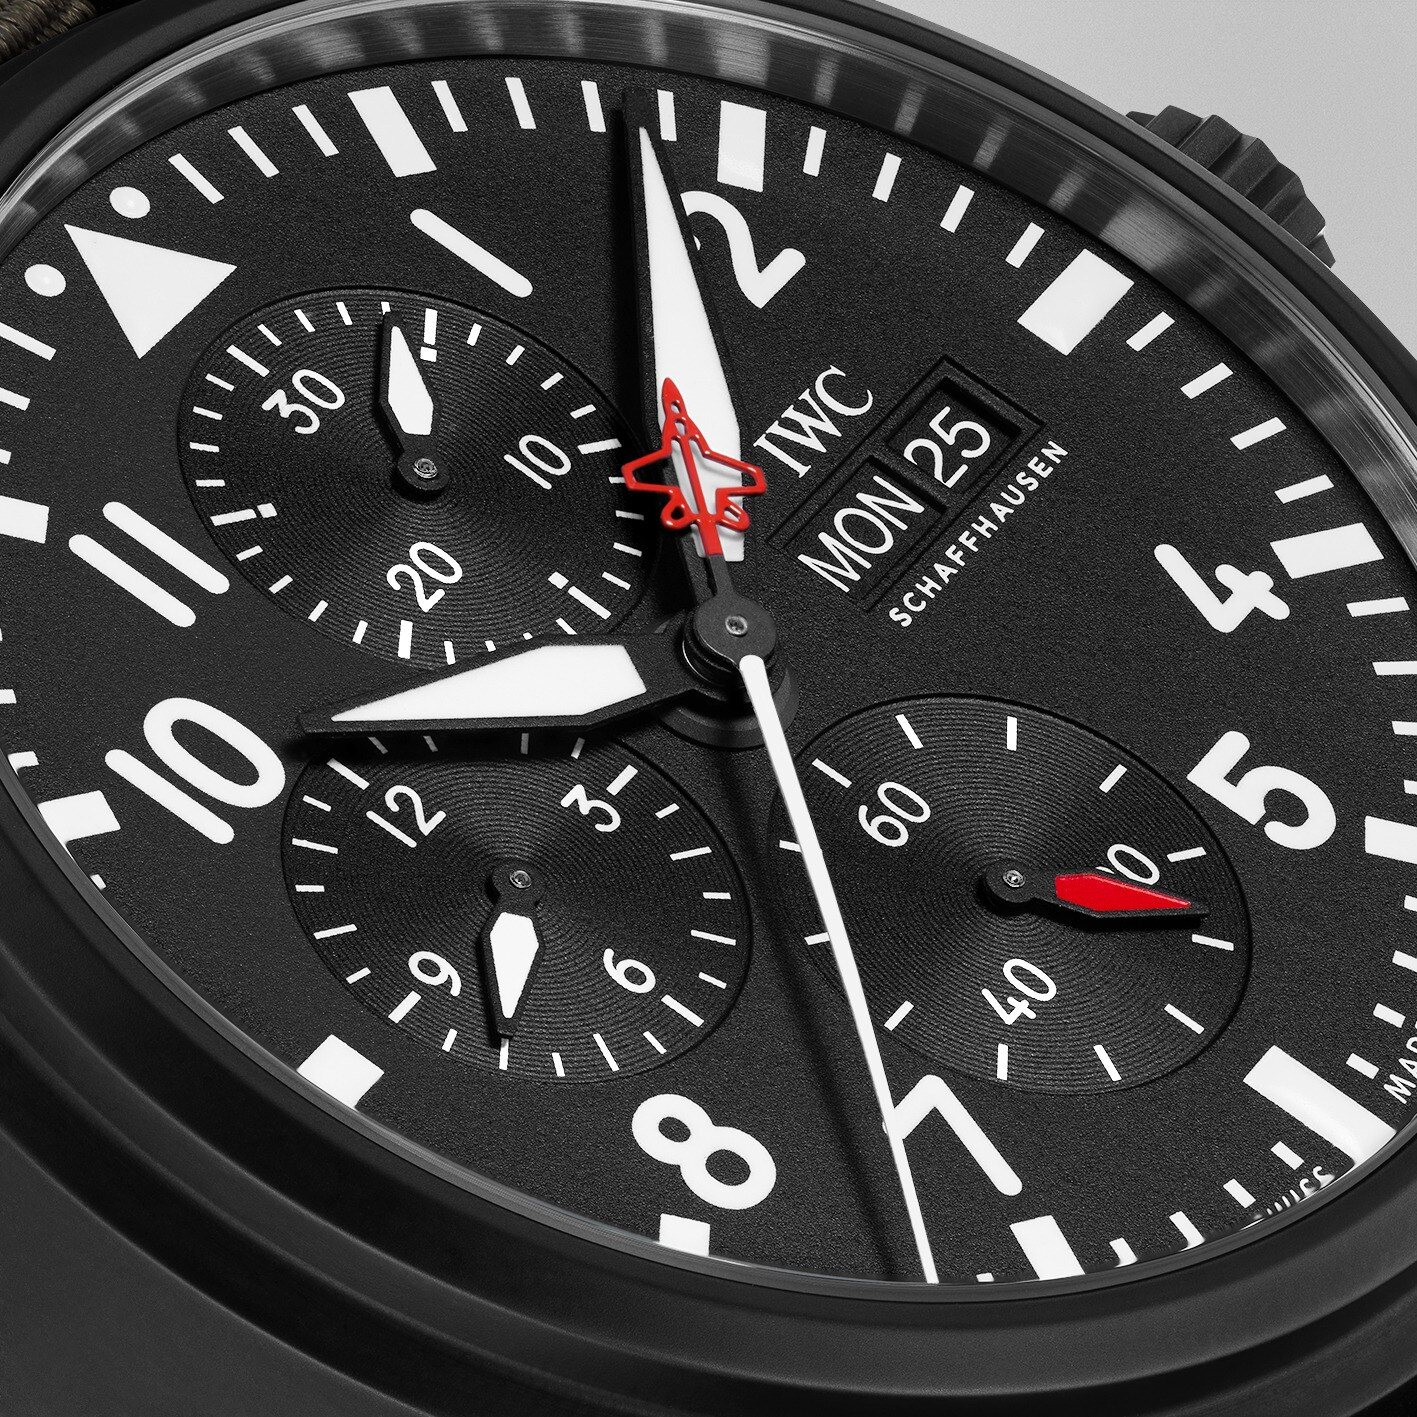 Iwc Pilot Watch Chronograph Top Gun Edition SFTI IW389104 detalle esfera